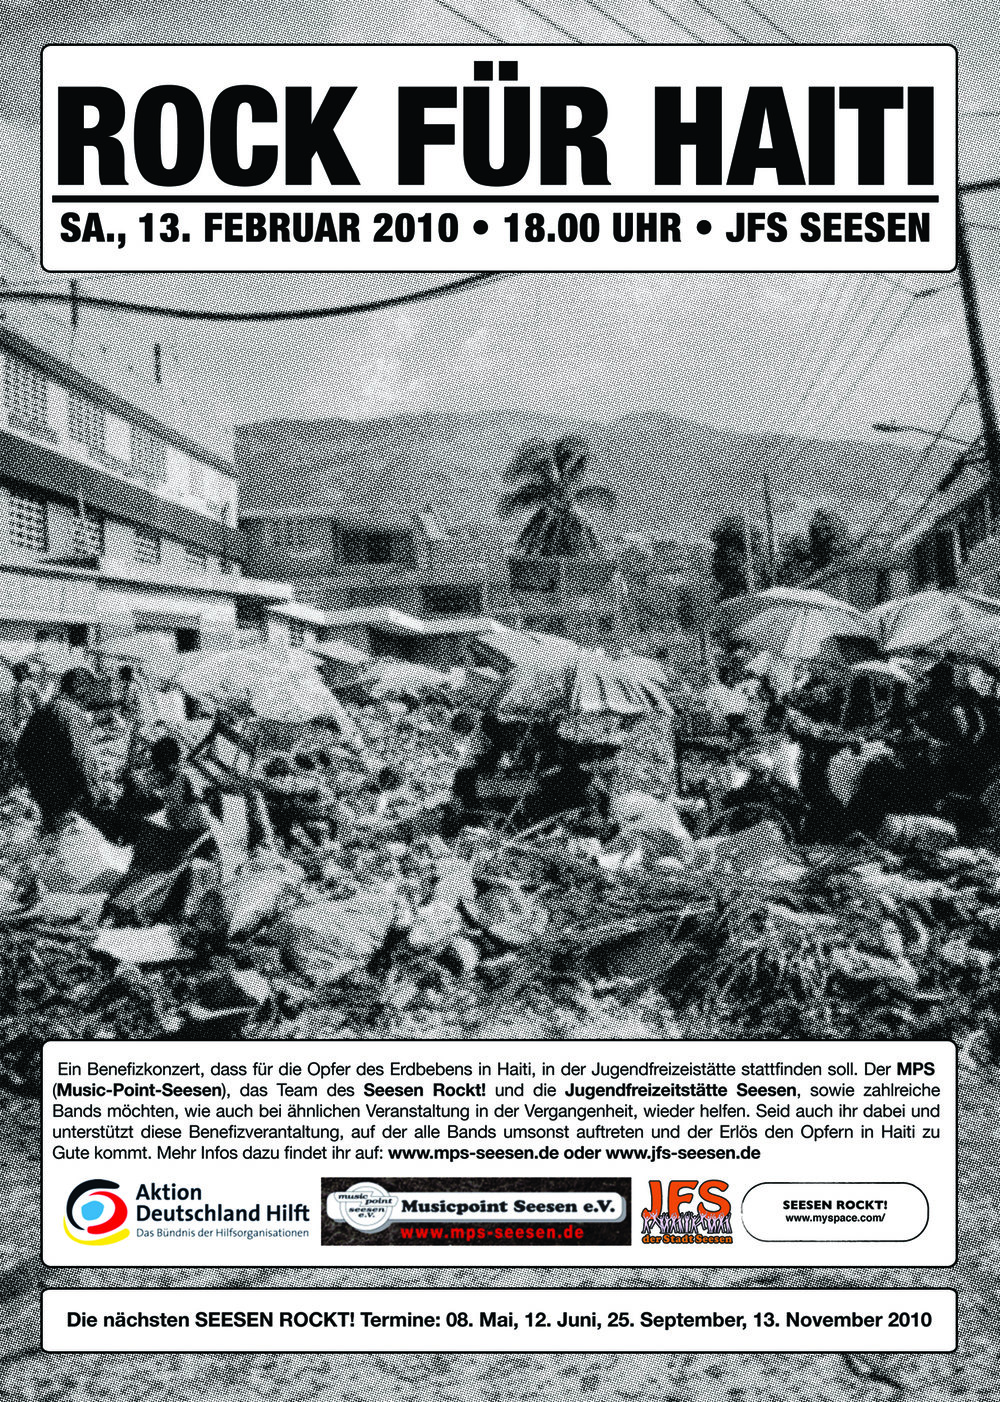 SEESEN_ROCKT_15_FLYER_BACK.jpg